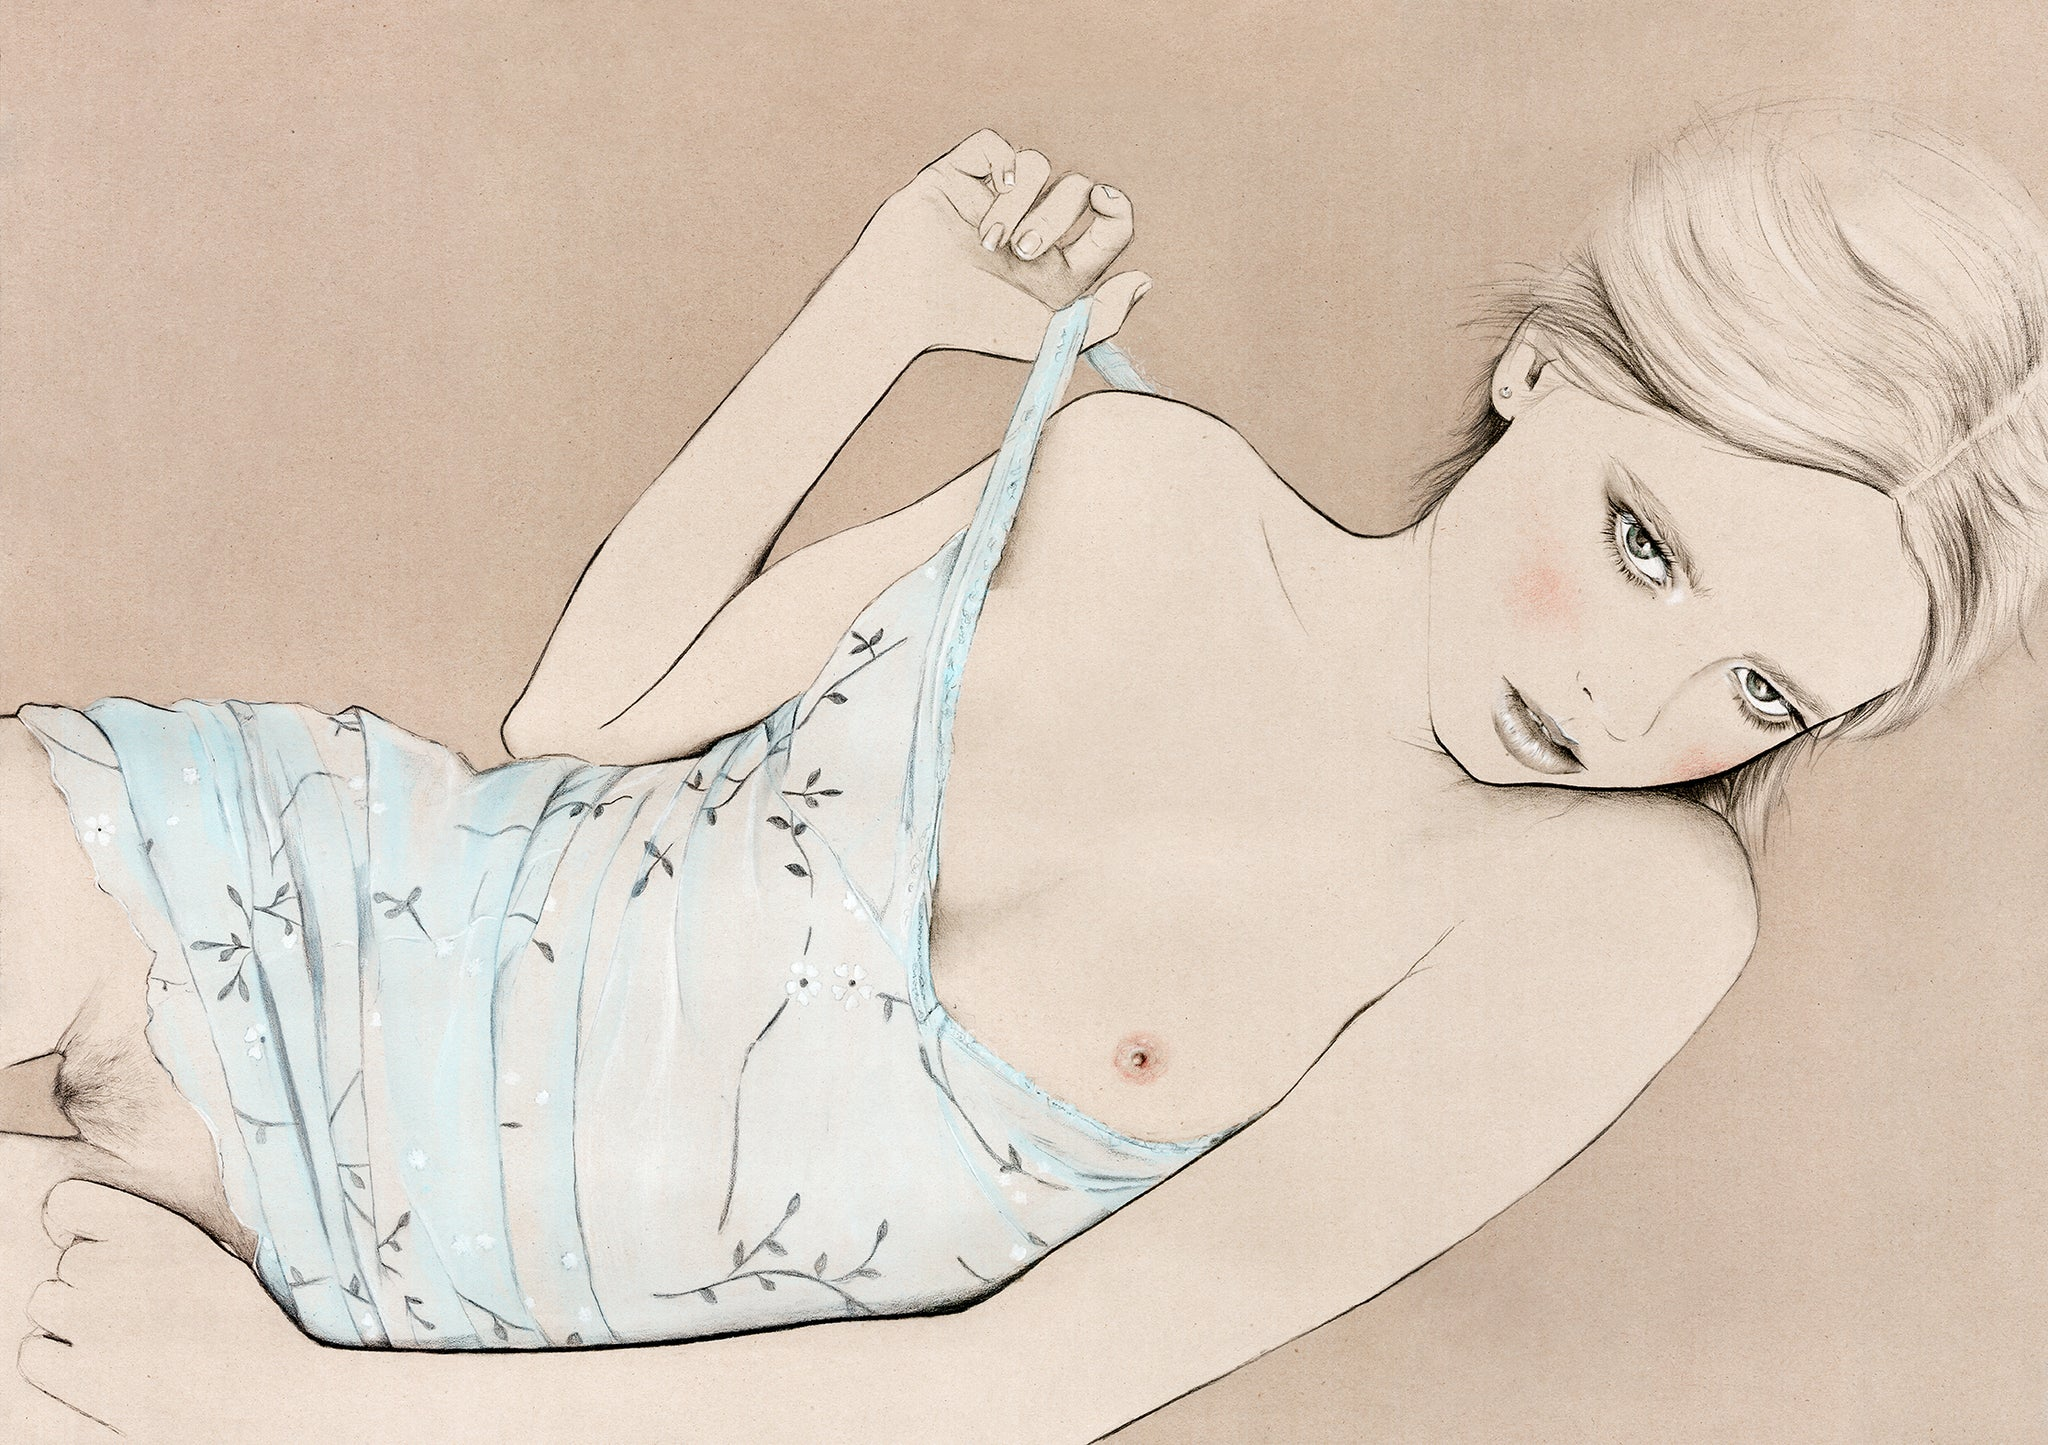 Nude girl illustration fashion illustration by Melbourne based illustrator Kelly Thompson